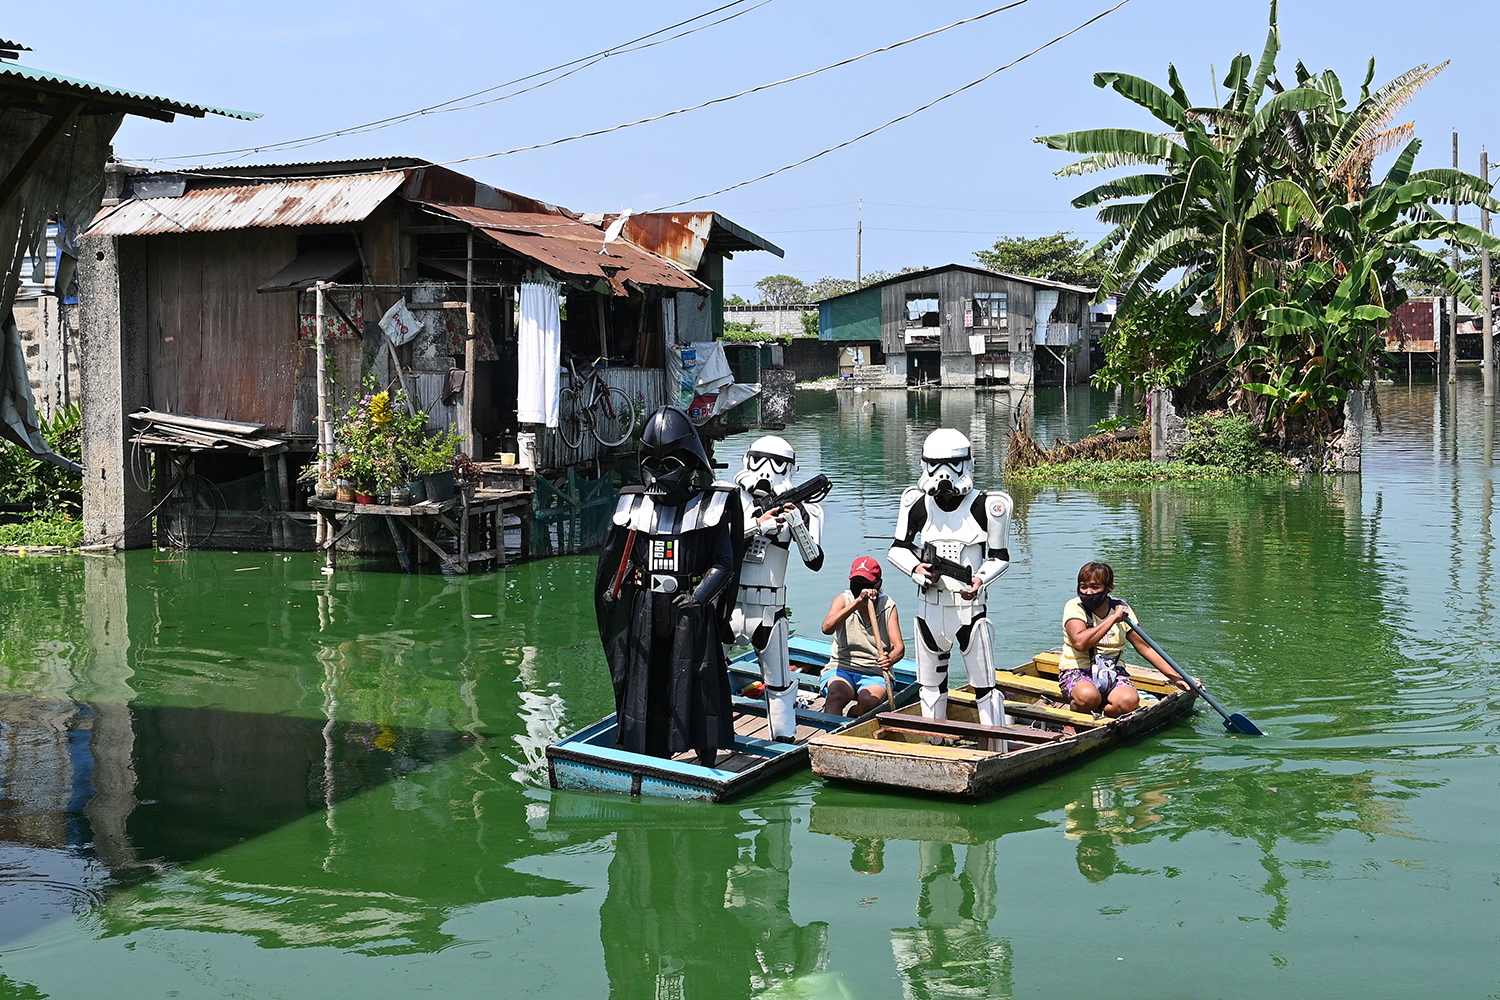 Local youth representatives dressed Stormtroopers and Darth Vader patrol in a wooden boat around a submerged village in Manila, Philippines, on May 6 to remind residents to stay at home during the enhanced community quarantine. TED ALJIBE/AFP via Getty Images)